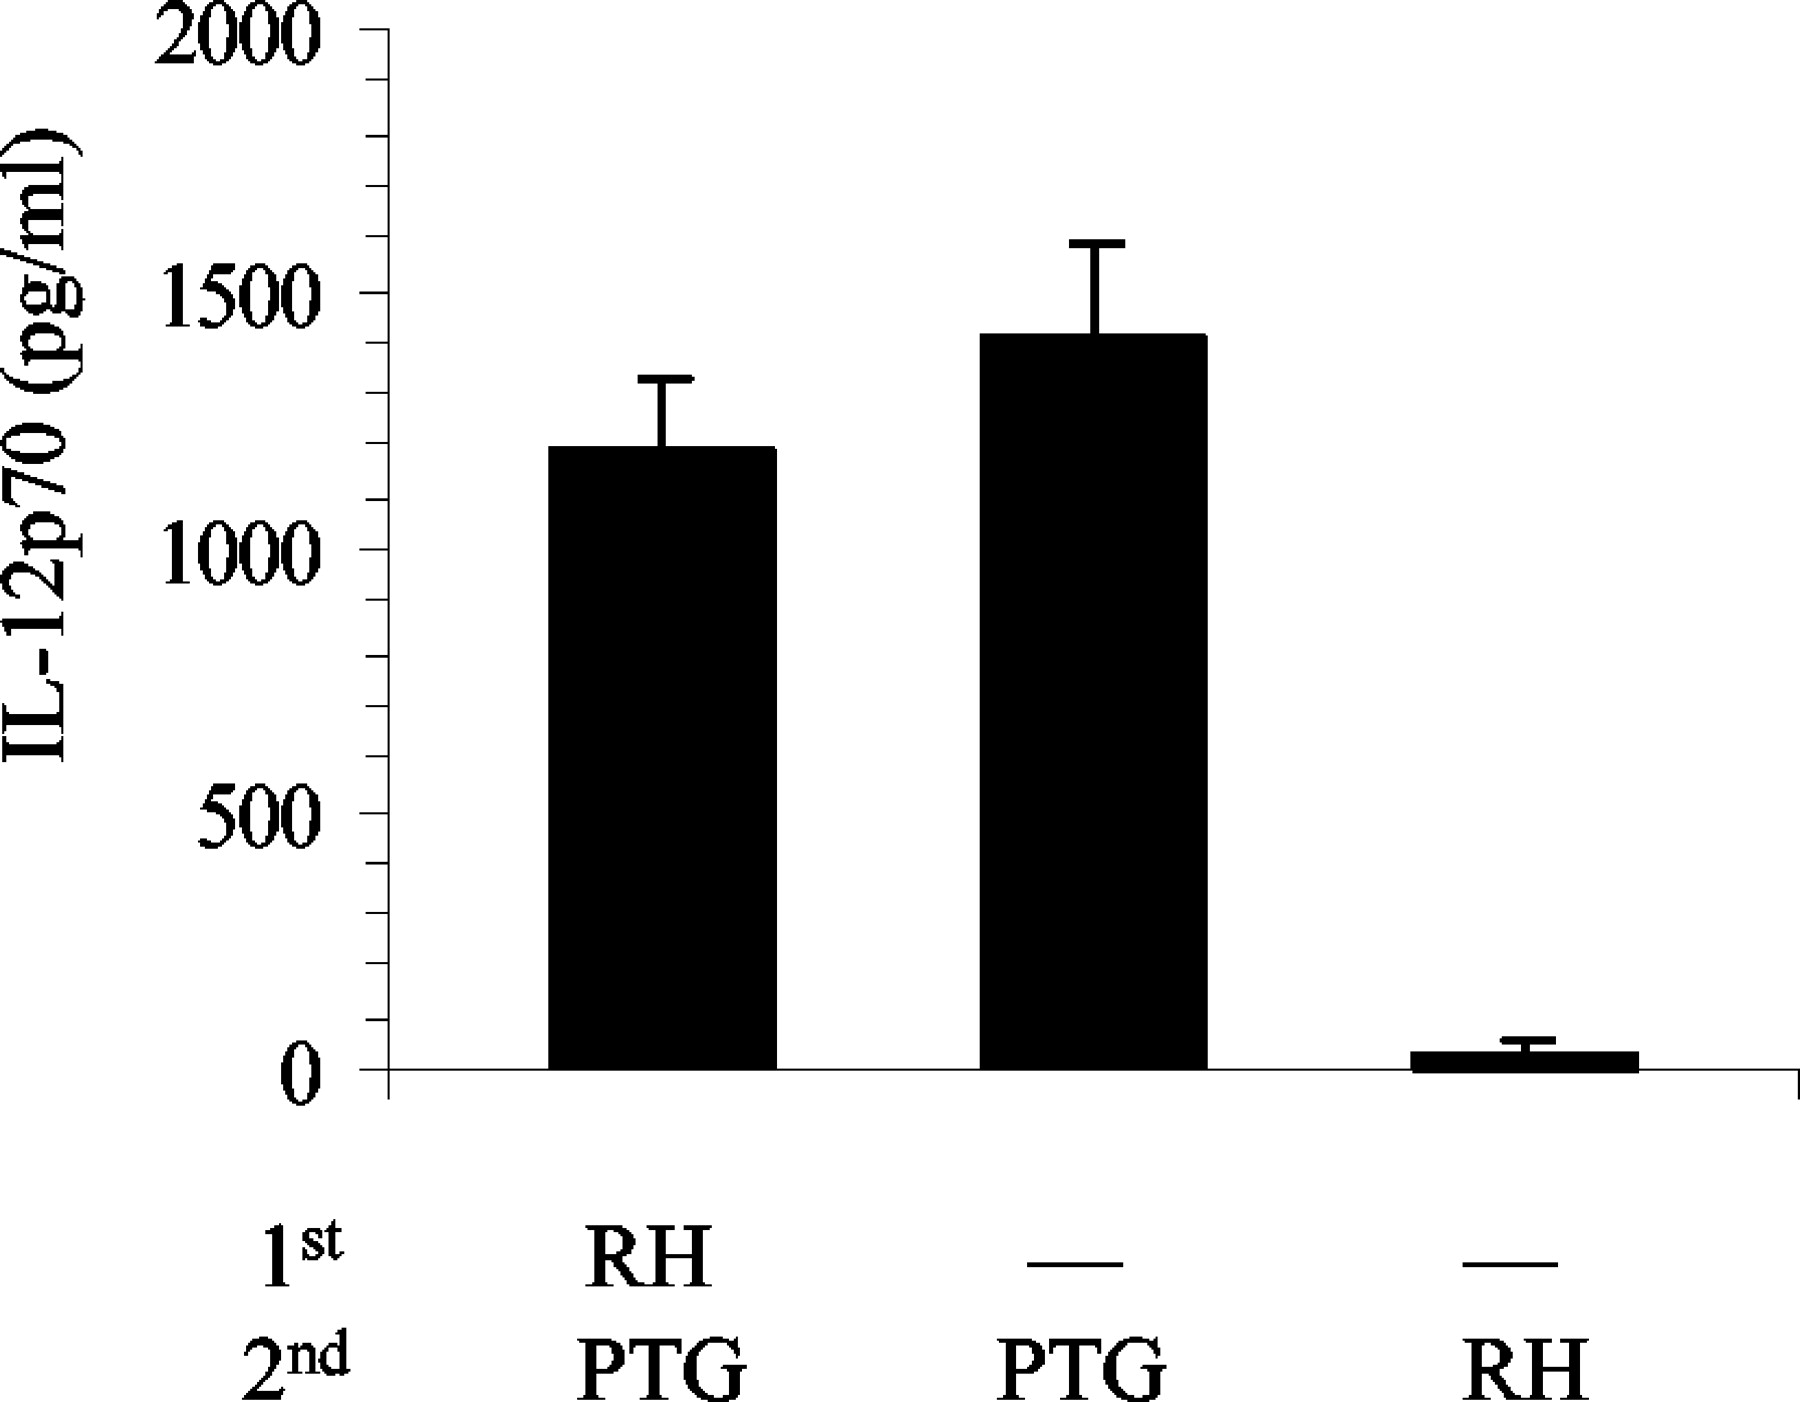 Production Of Il 12 By Macrophages Infected With Toxoplasma Gondii Figure Ptg Type High Frequency Generator Circuit Download